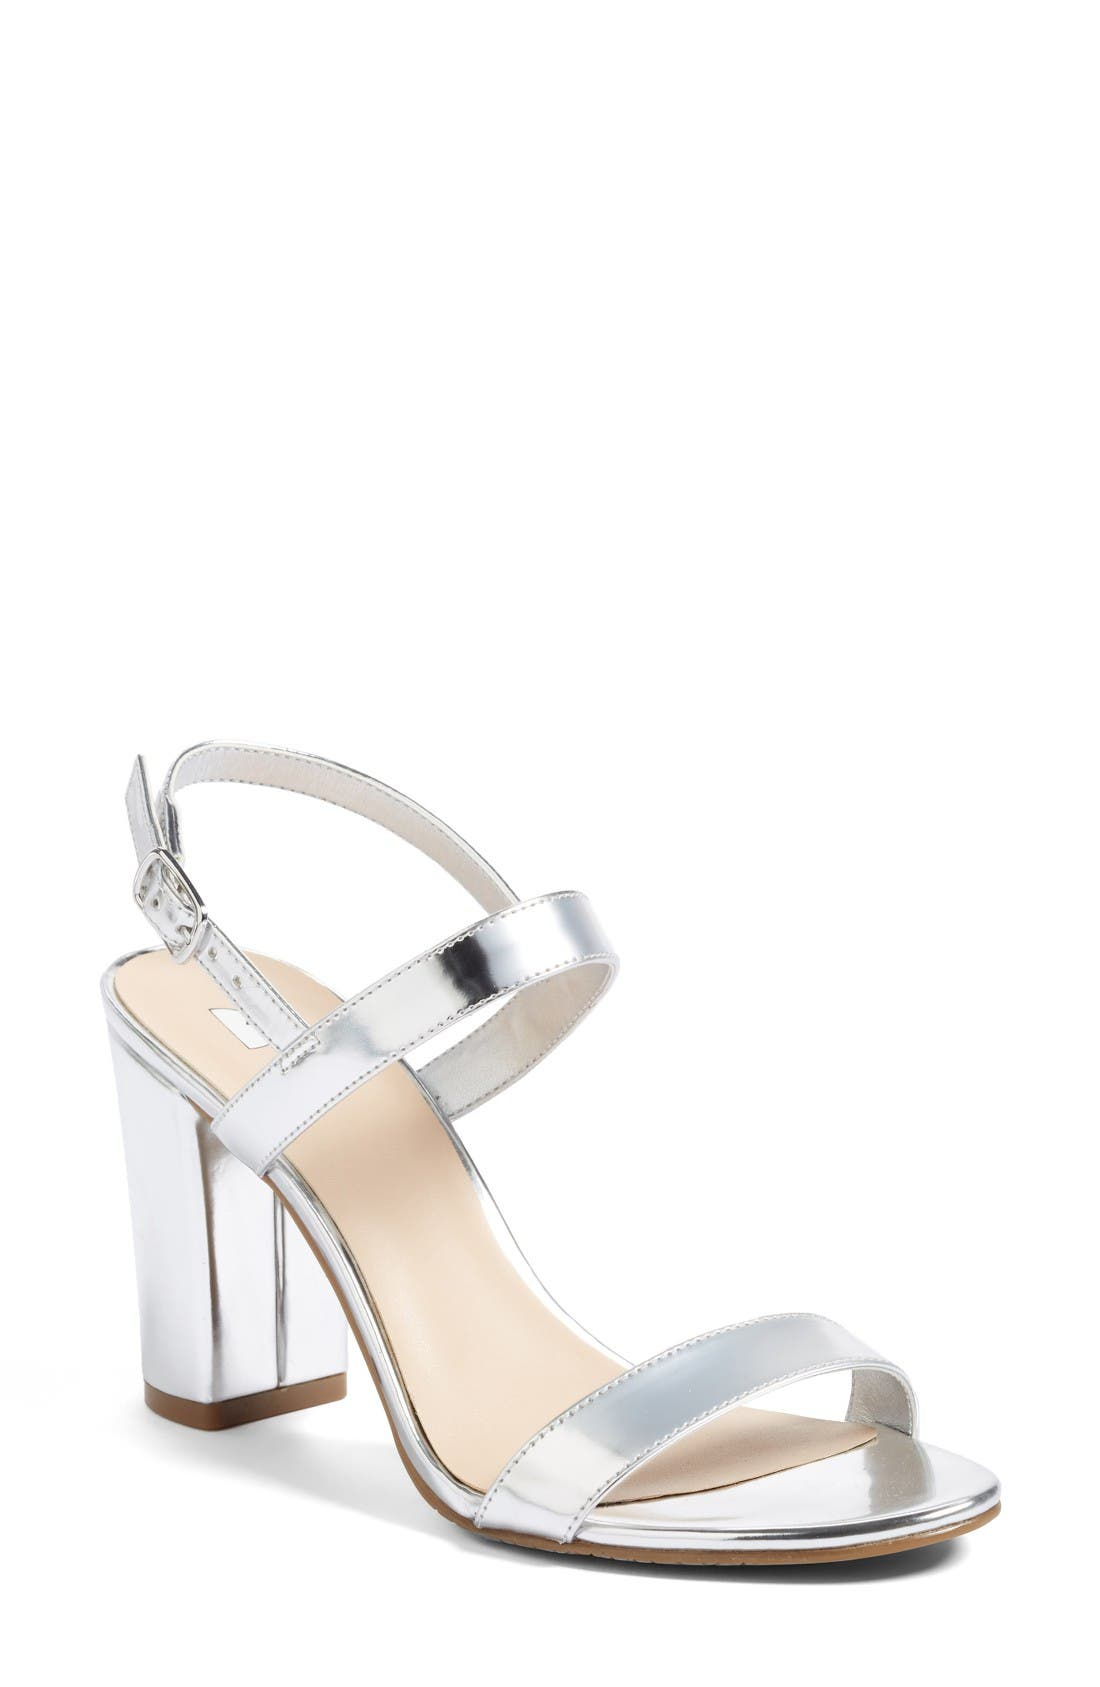 Metallic Strappy Heels & High-Heel Shoes for Women | Nordstrom